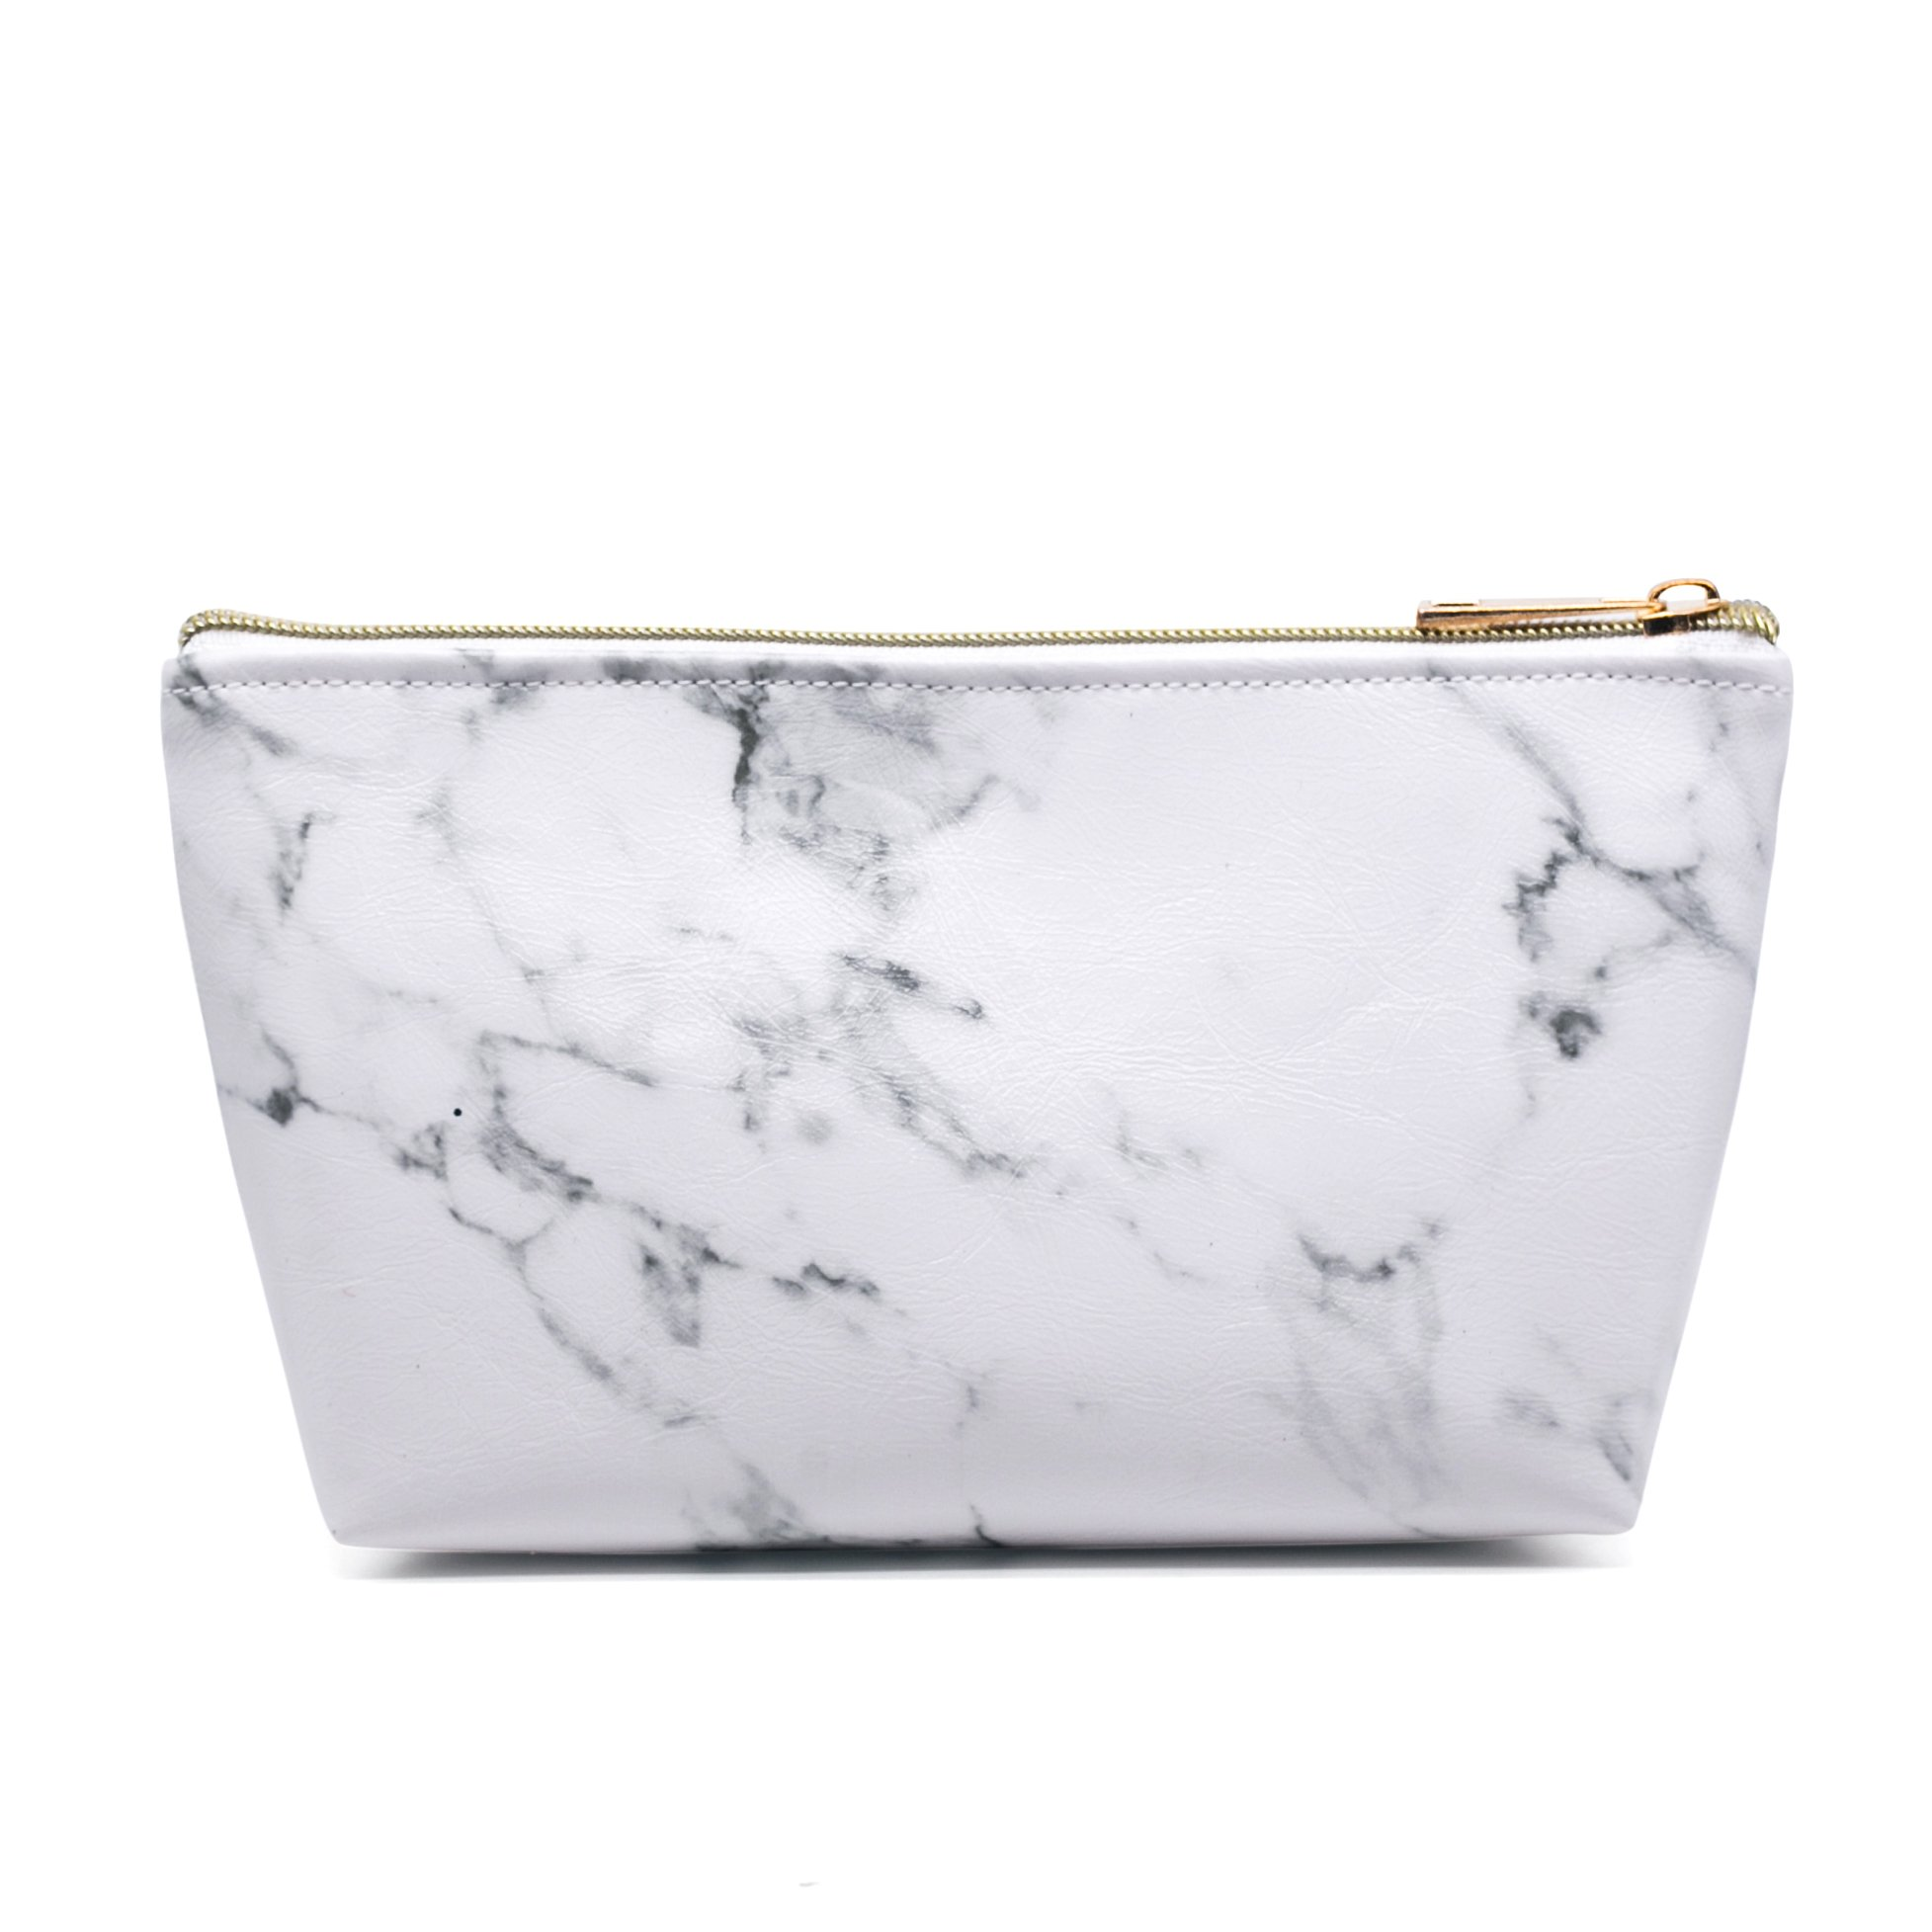 Marble Cosmetic Bag with Gold Zipper,Portable Ladies Travel Makeup Brushes Bag